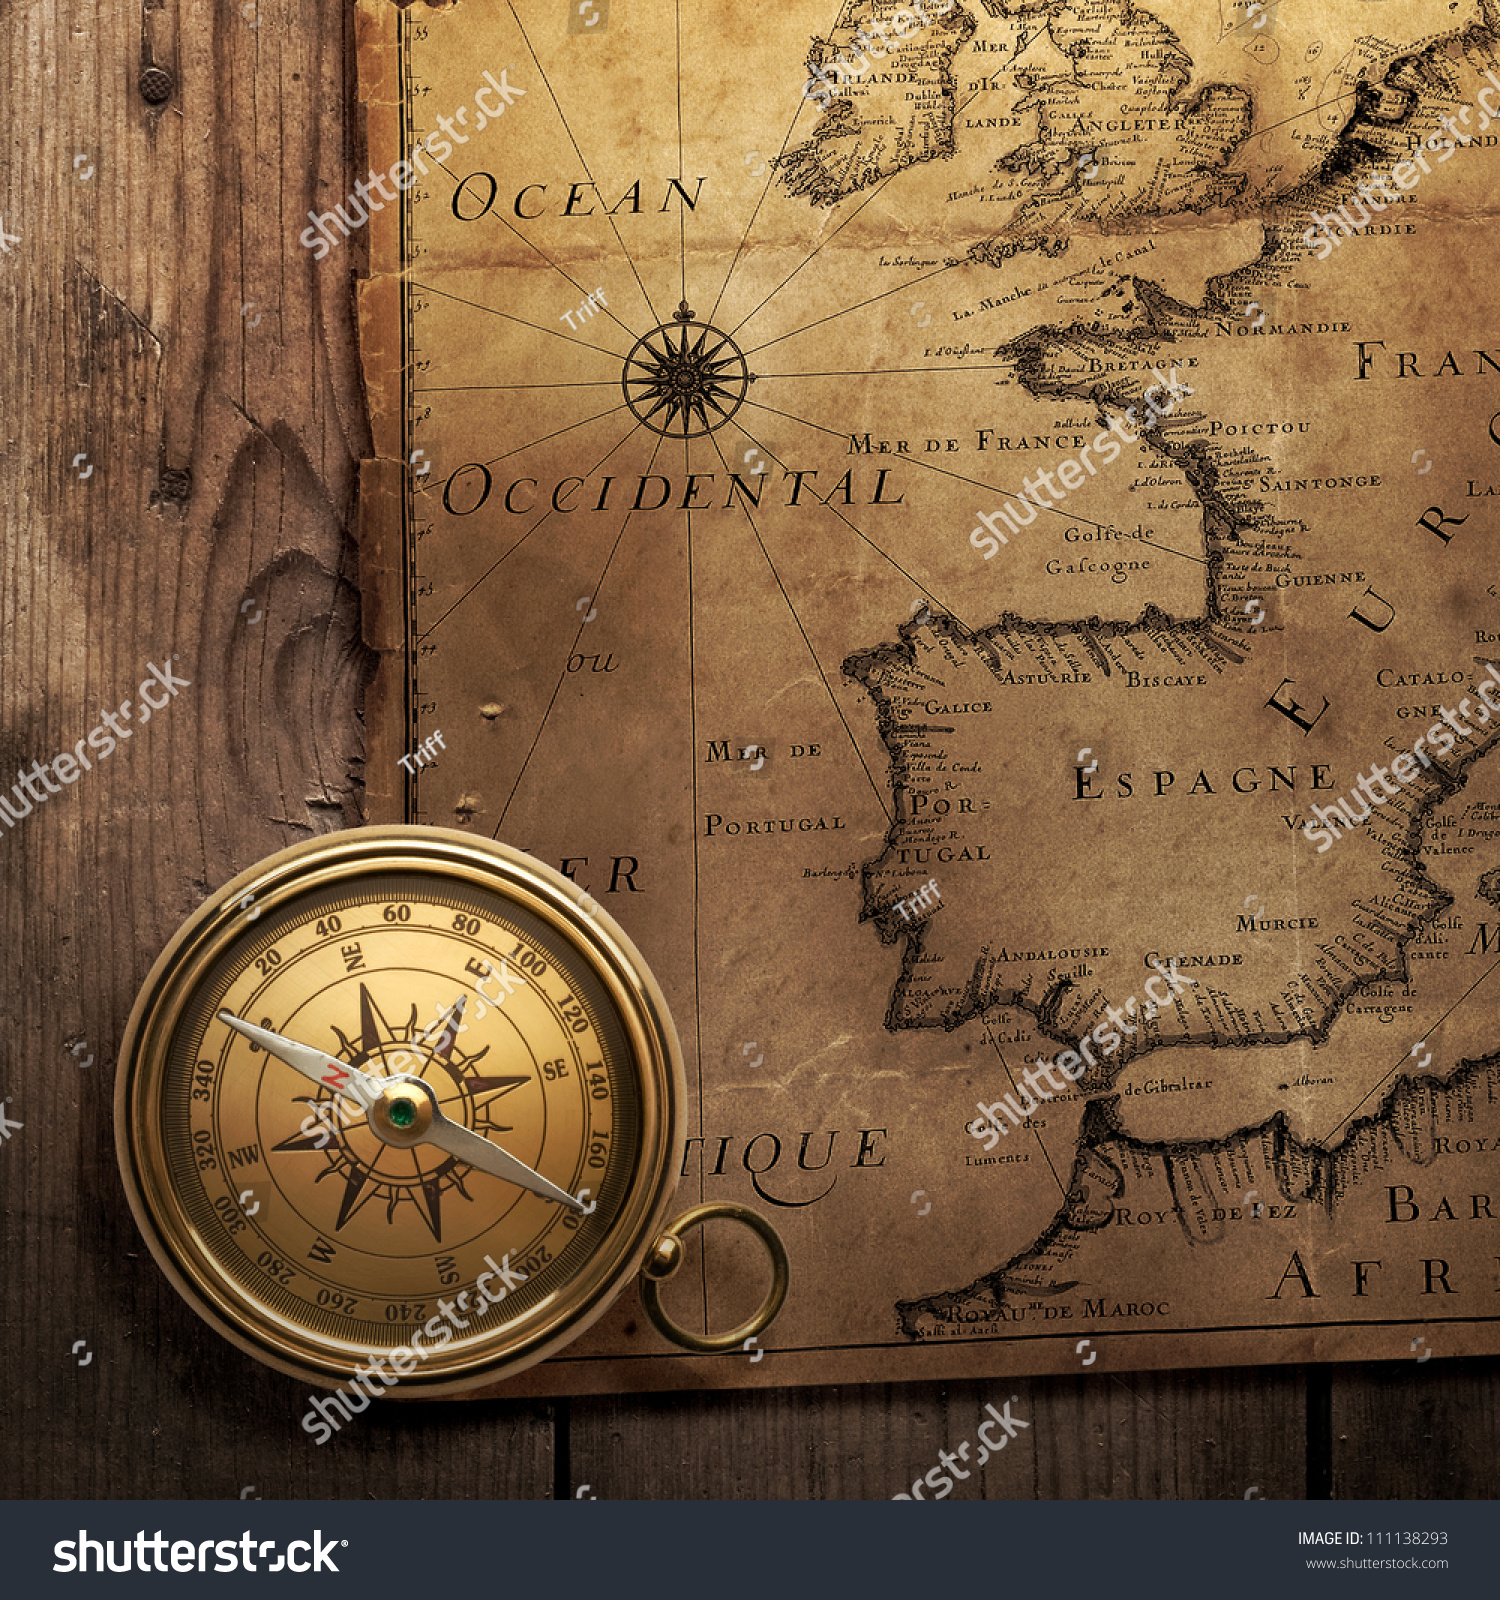 Old Compass On Vintage Map France Stock Photo Shutterstock - Portugal england map